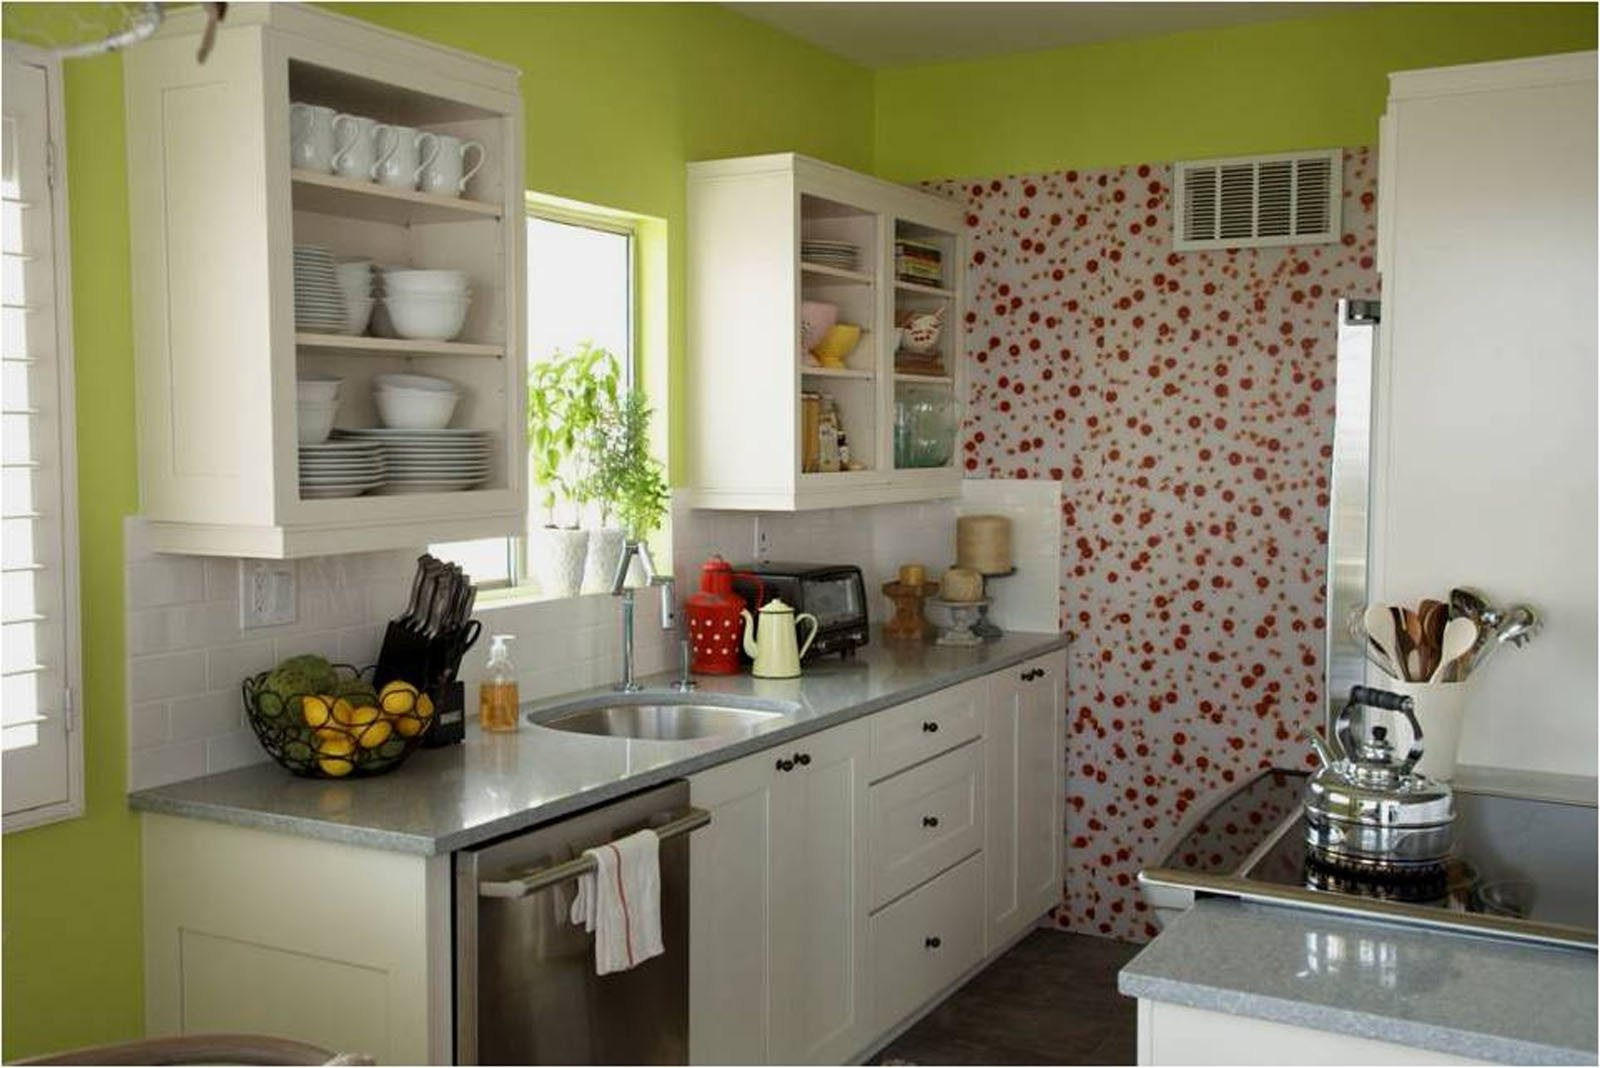 10 Most Popular Country Kitchen Decorating Ideas On A Budget kitchen ideas decorating small decoration cheap best surripui 2020